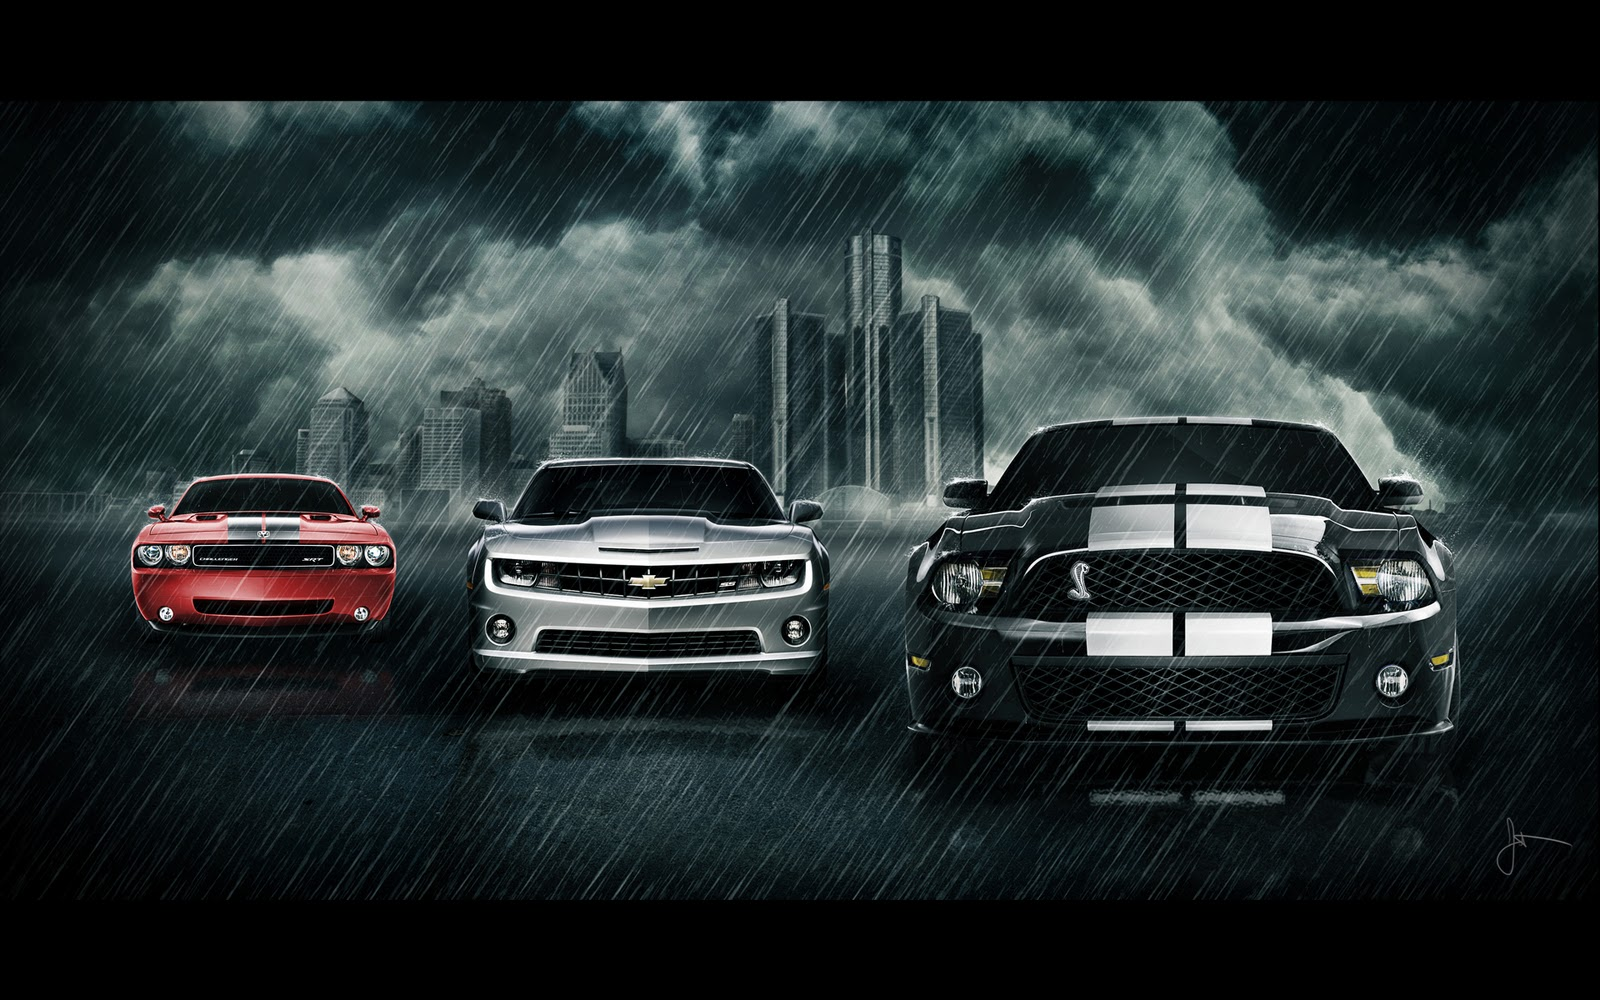 Hd Car wallpapers muscle car wallpapers for desktop 1600x1000